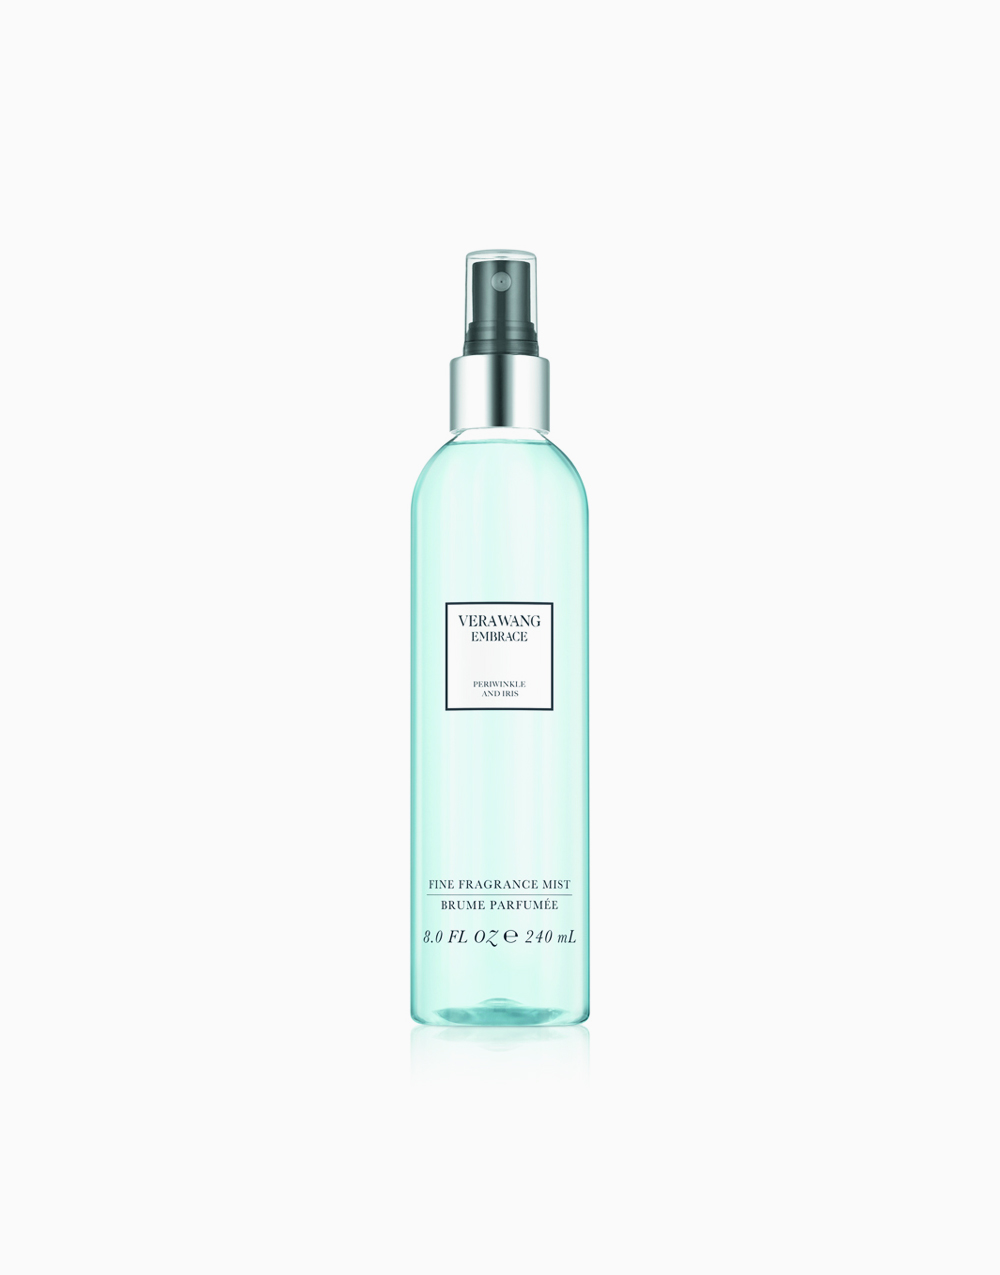 Vera Wang Embrace Periwinkle and Iris Body Mist (8oz) by Vera Wang